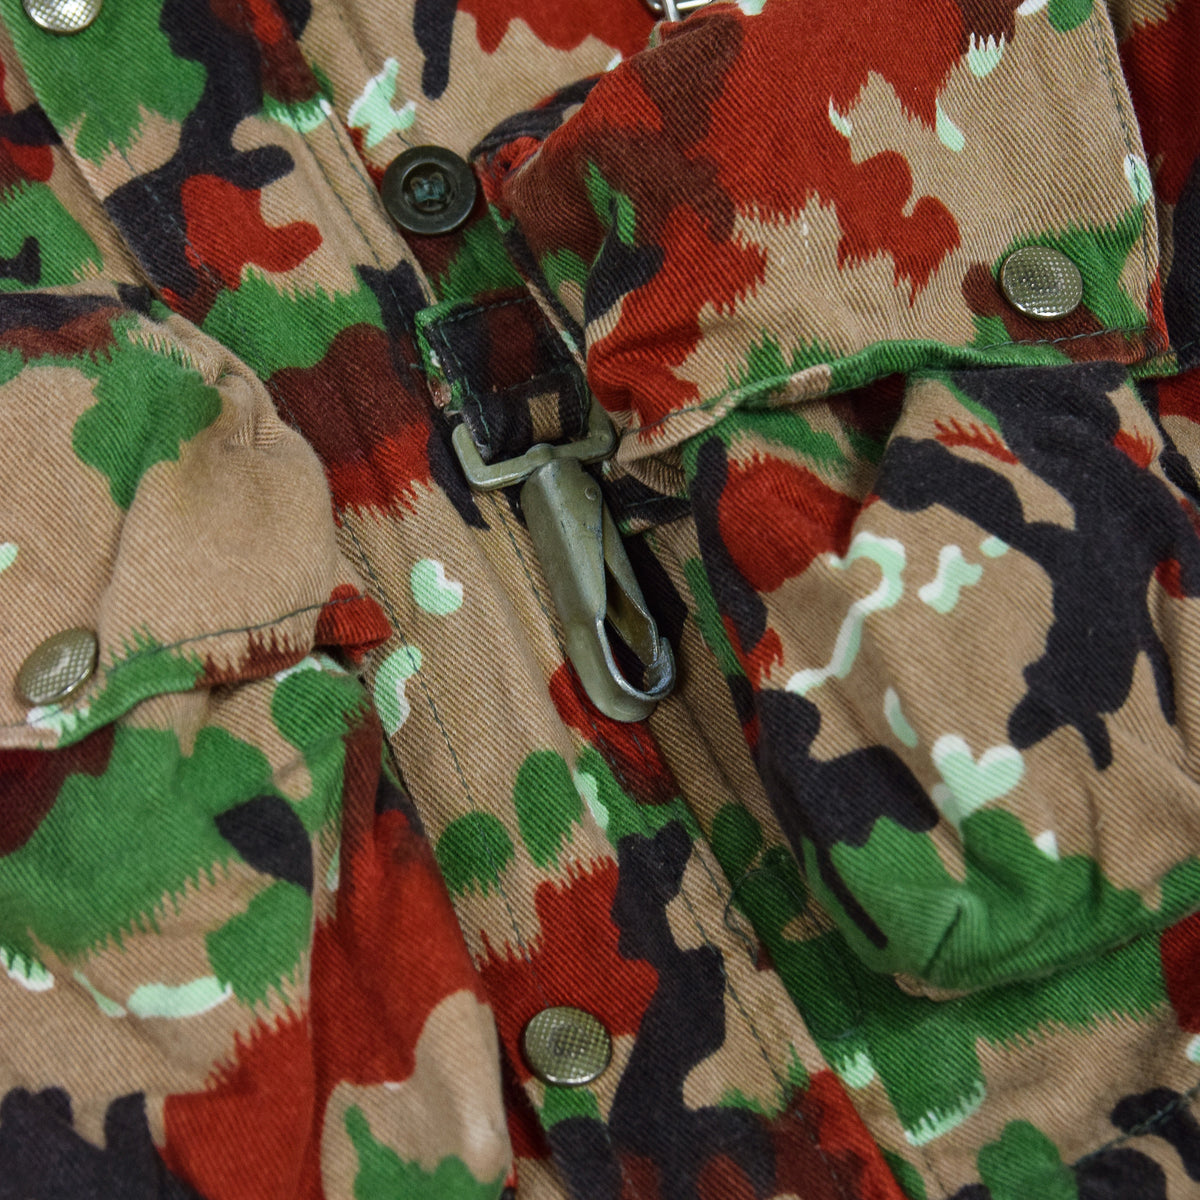 Vintage 70s Swiss Army Alpenflage Camo Sniper Combat Field Jacket M / L pocket 2